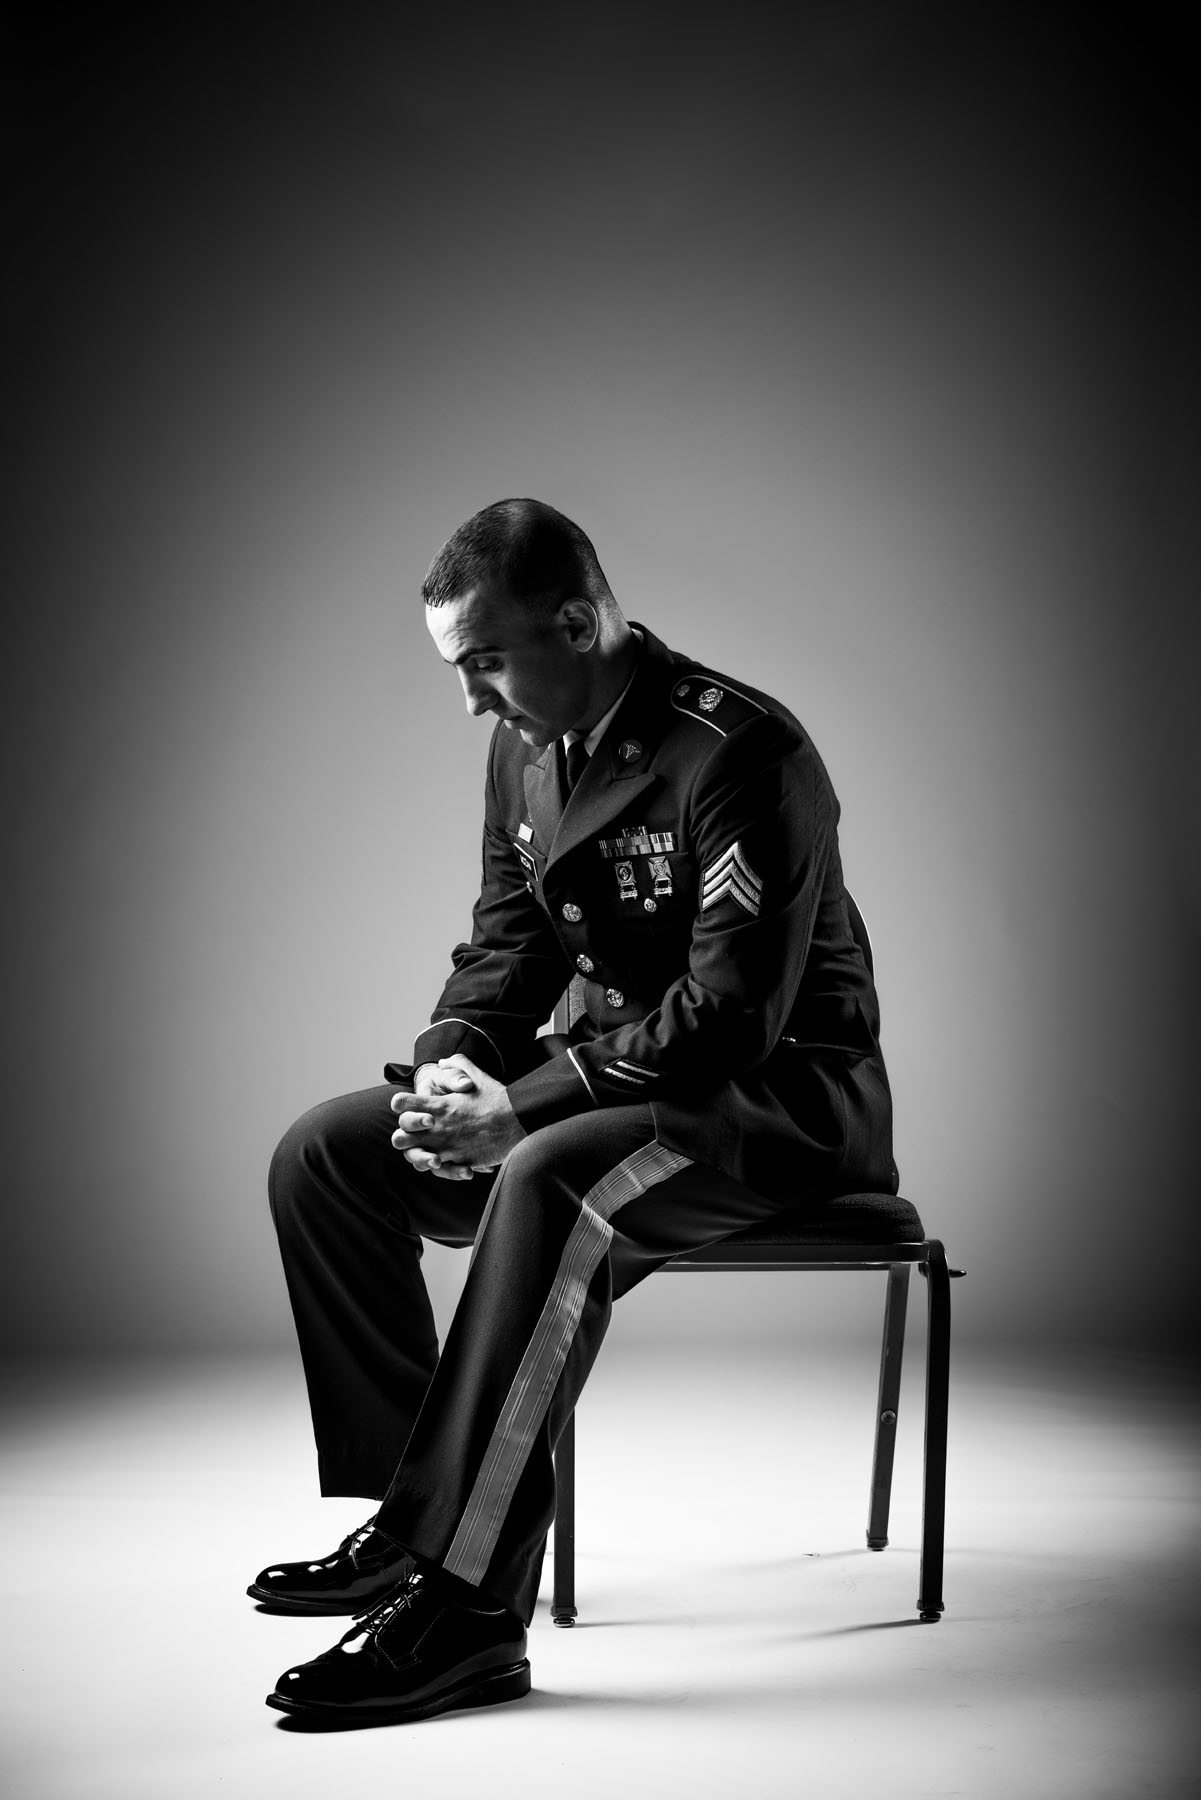 Veterans Portrait Project (Mazin Mozan), photo by: Stacy L. Pearsall